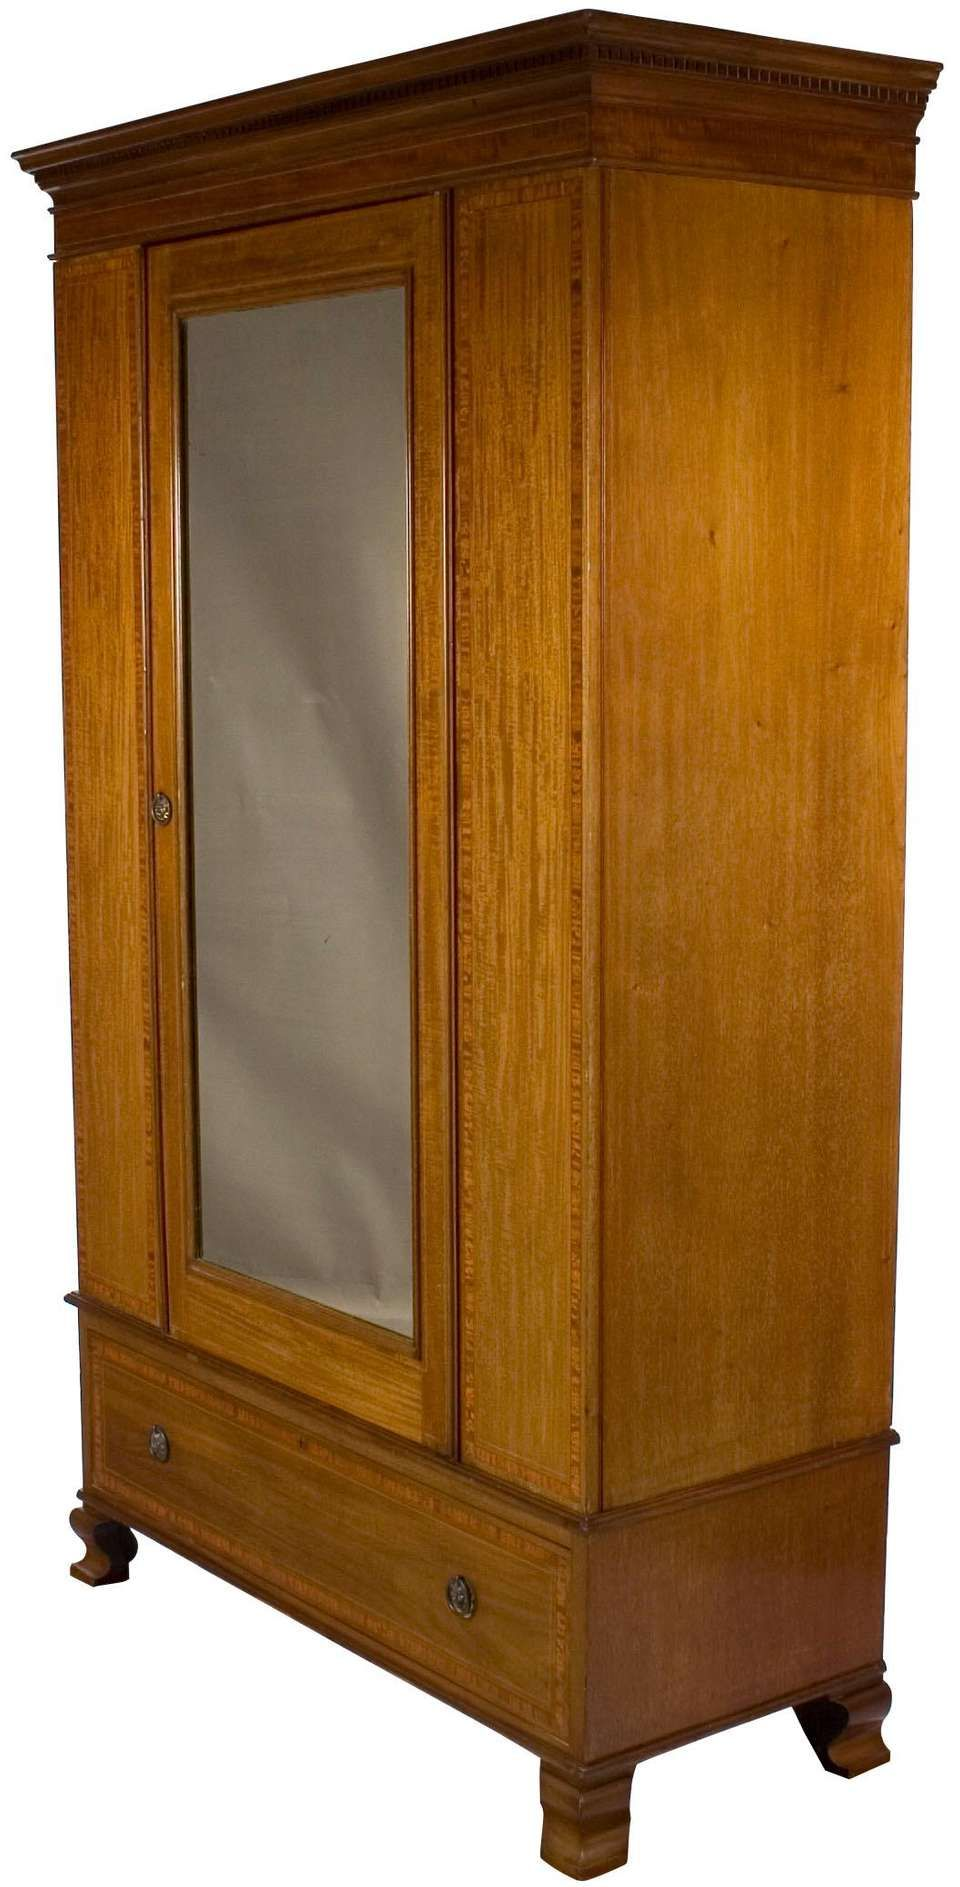 Edwardian Period Mirror Door Wardrobe Armoire Closet #edwardianperiod